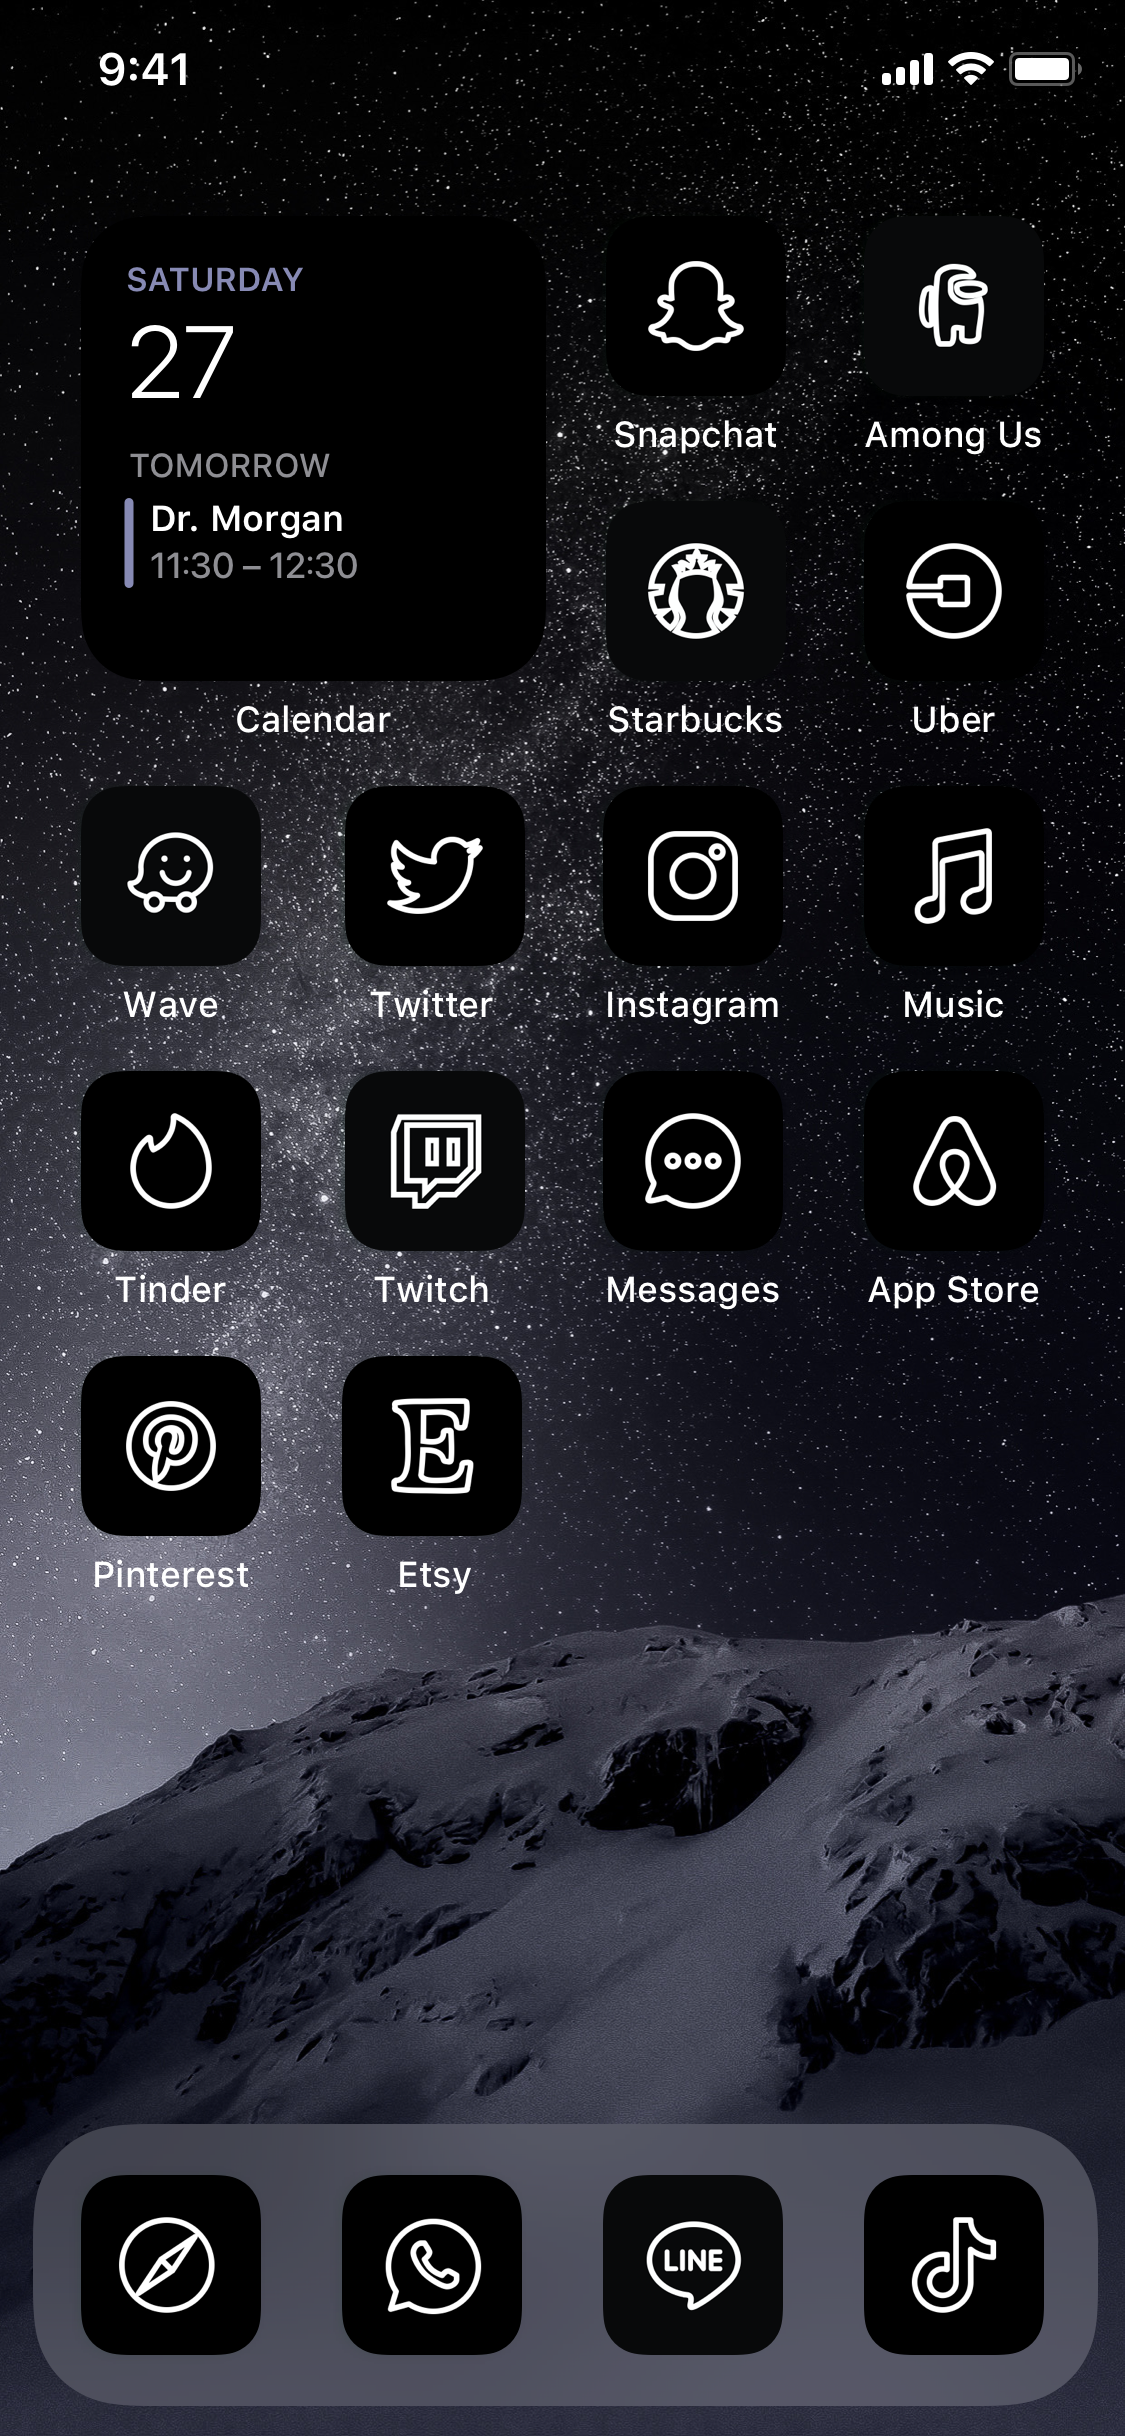 Cover image for 120 Black Aesthetic App Icon Covers for iOS 14 Home Screen